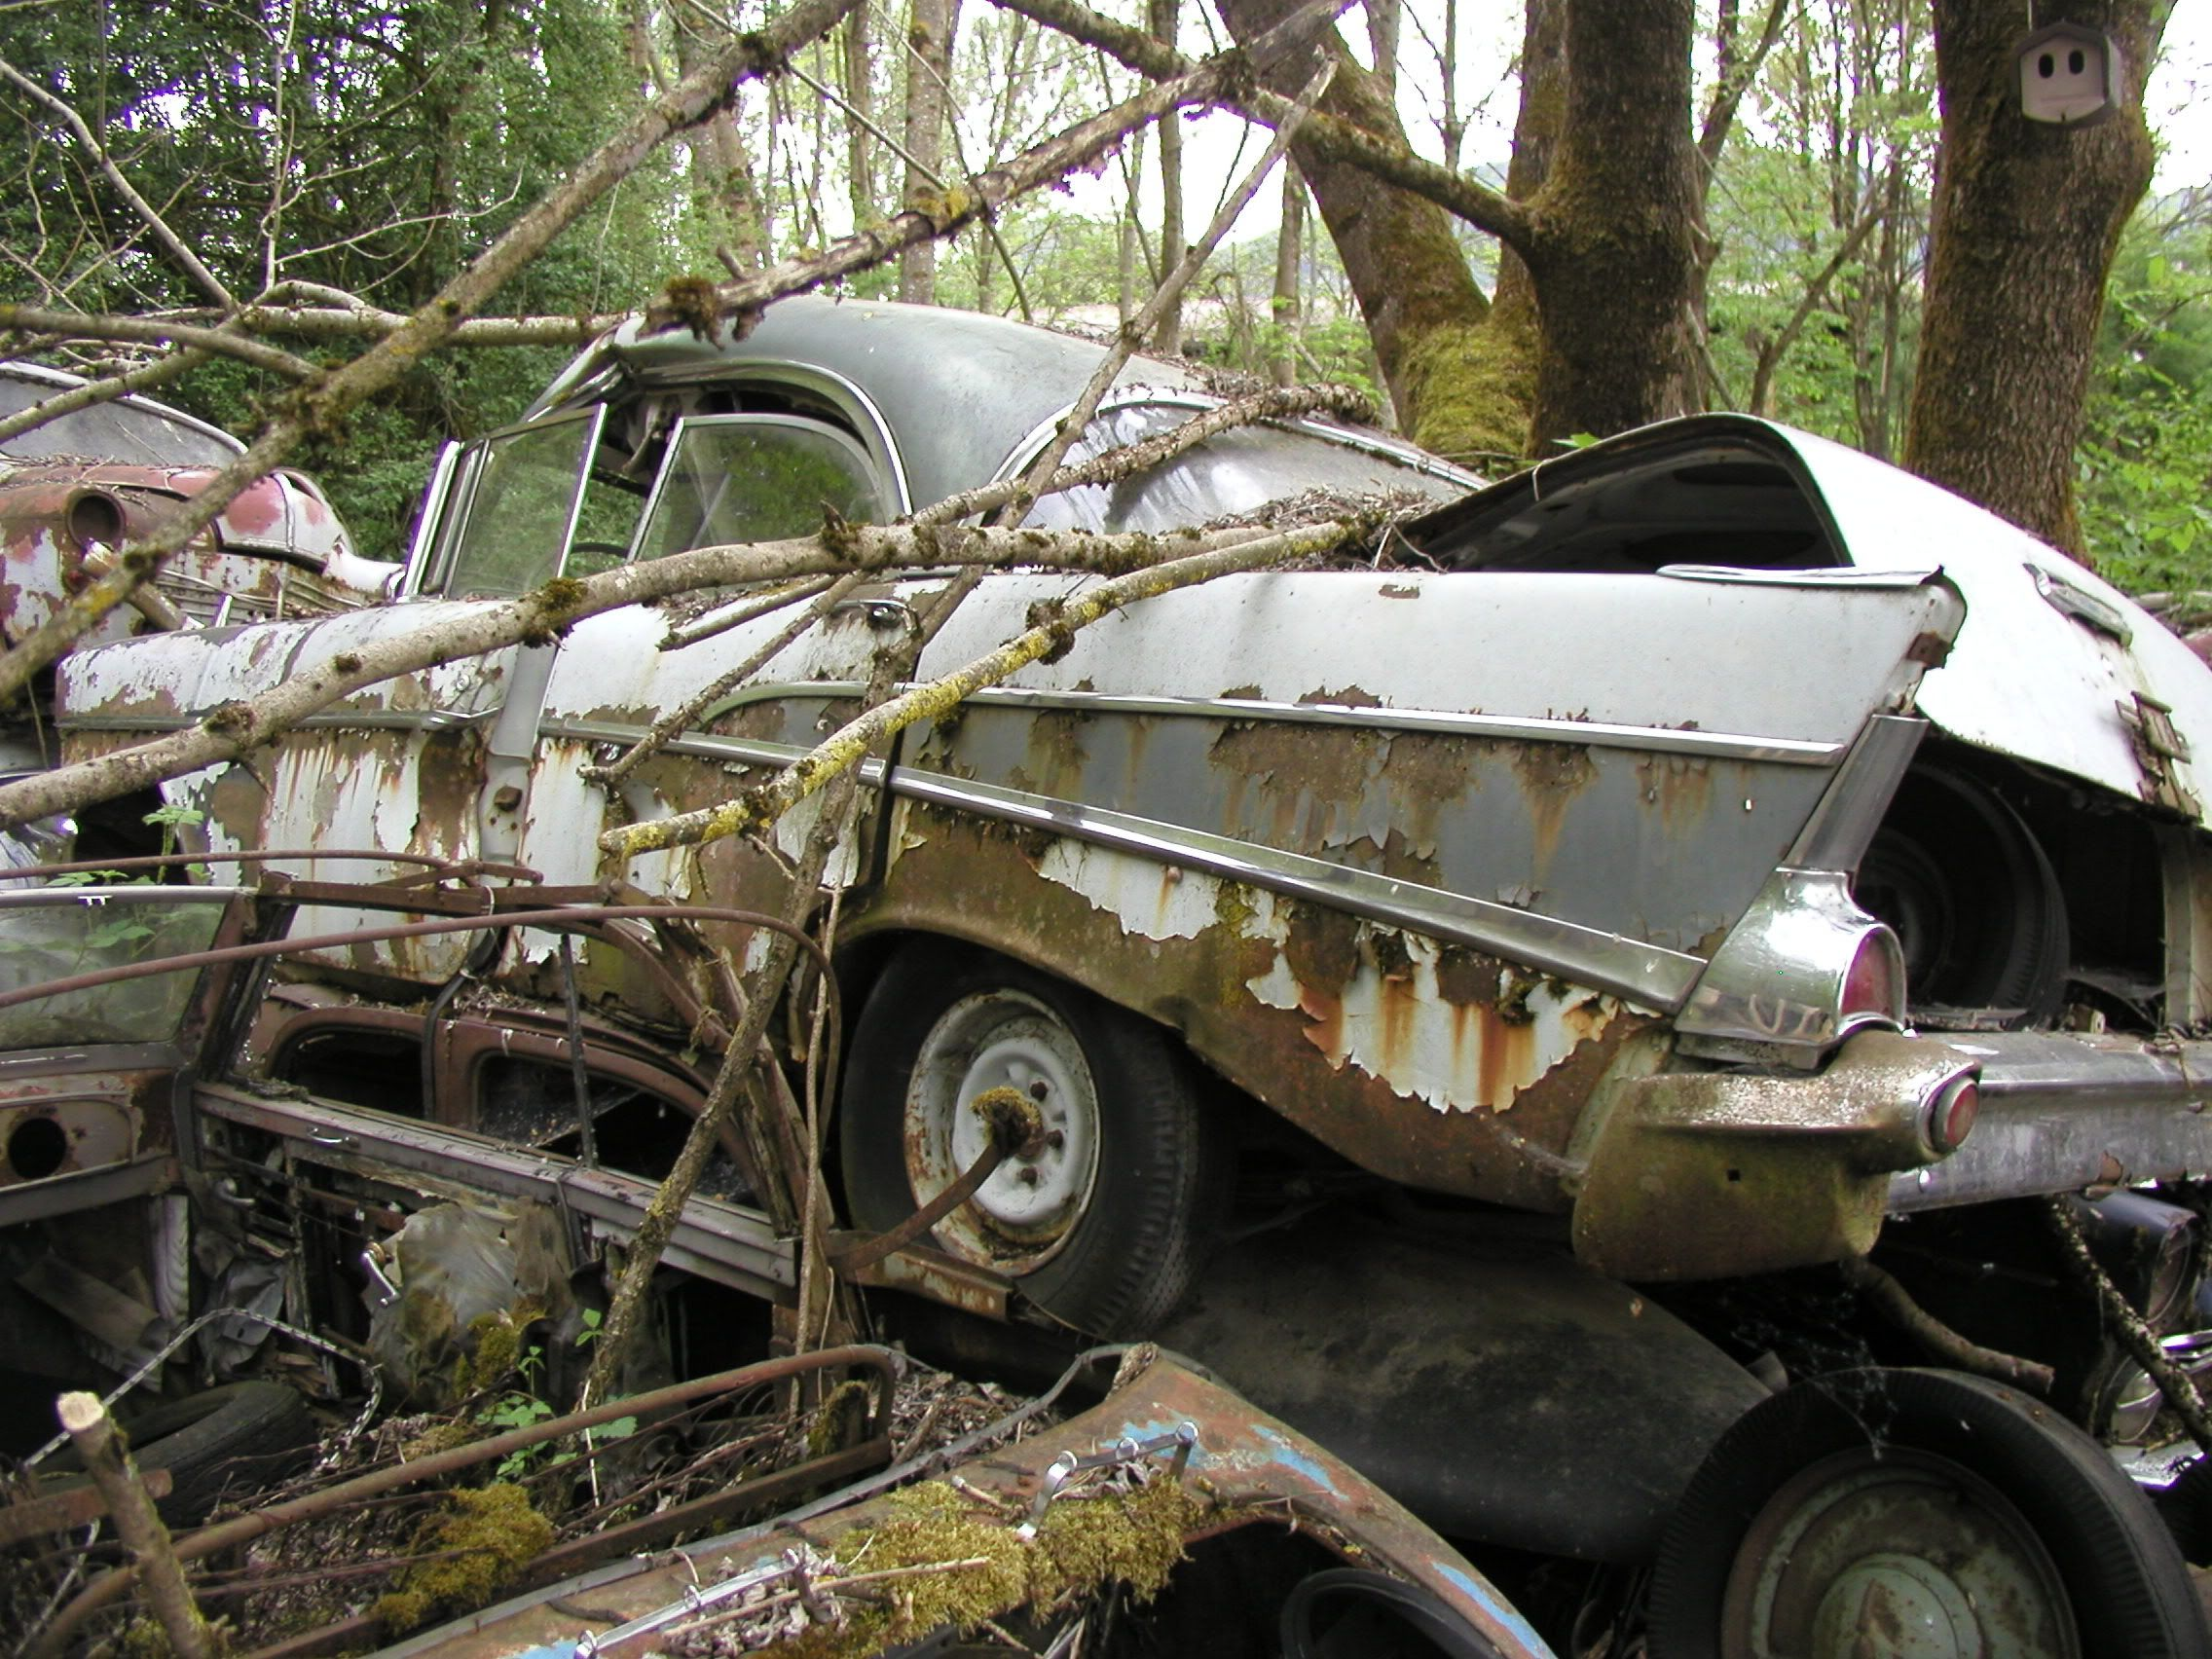 Pin By Patrick Yell On Salvage Yards Abandoned Cars Junkyard